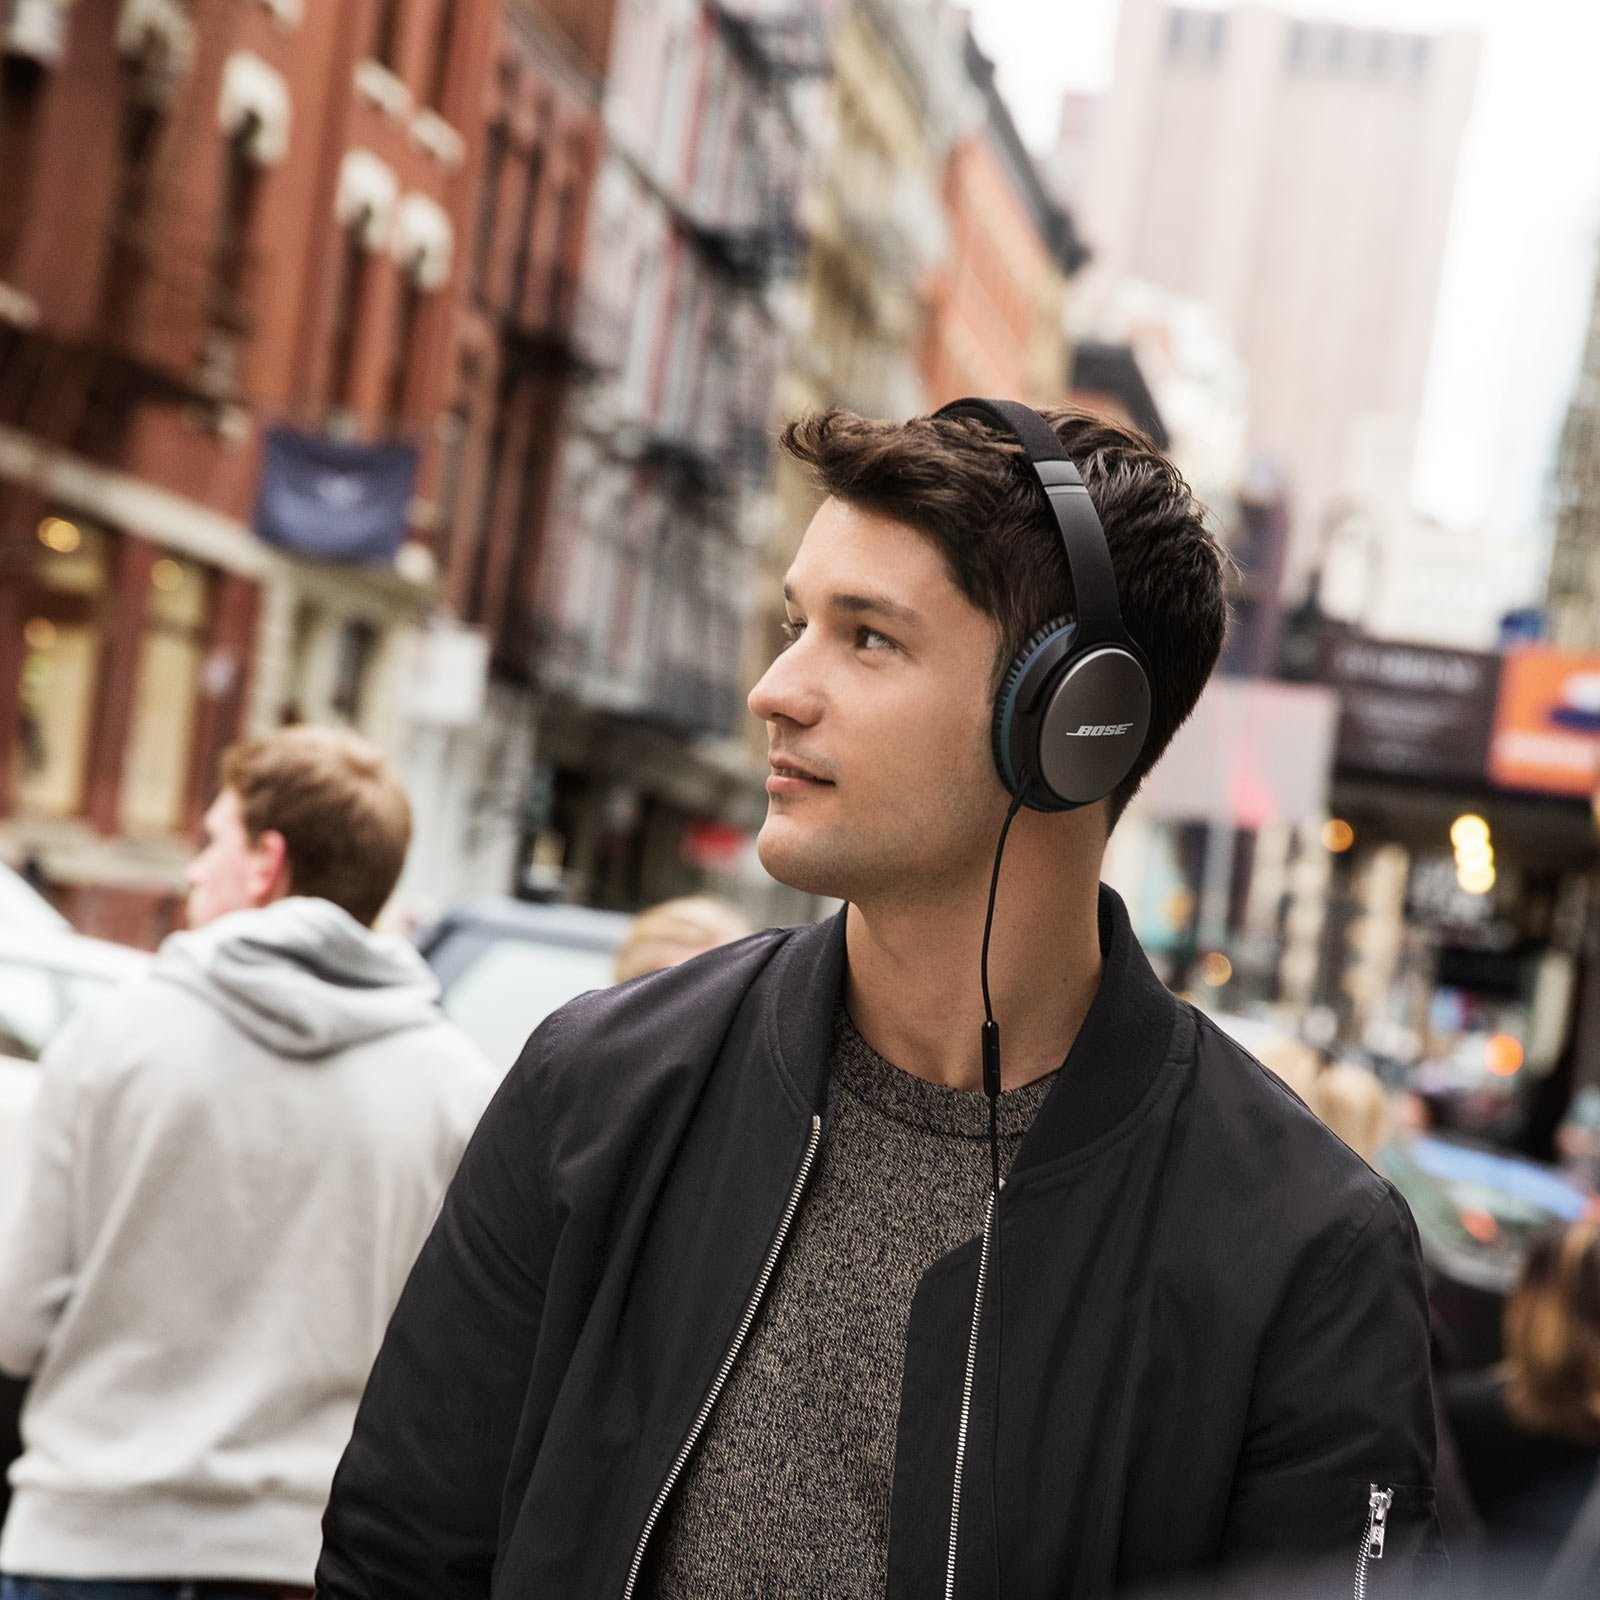 Bose QuietComfort 25 Acoustic Noise Cancelling Headphones for Apple devices - Black (wired, 3.5mm) by Bose (Image #12)